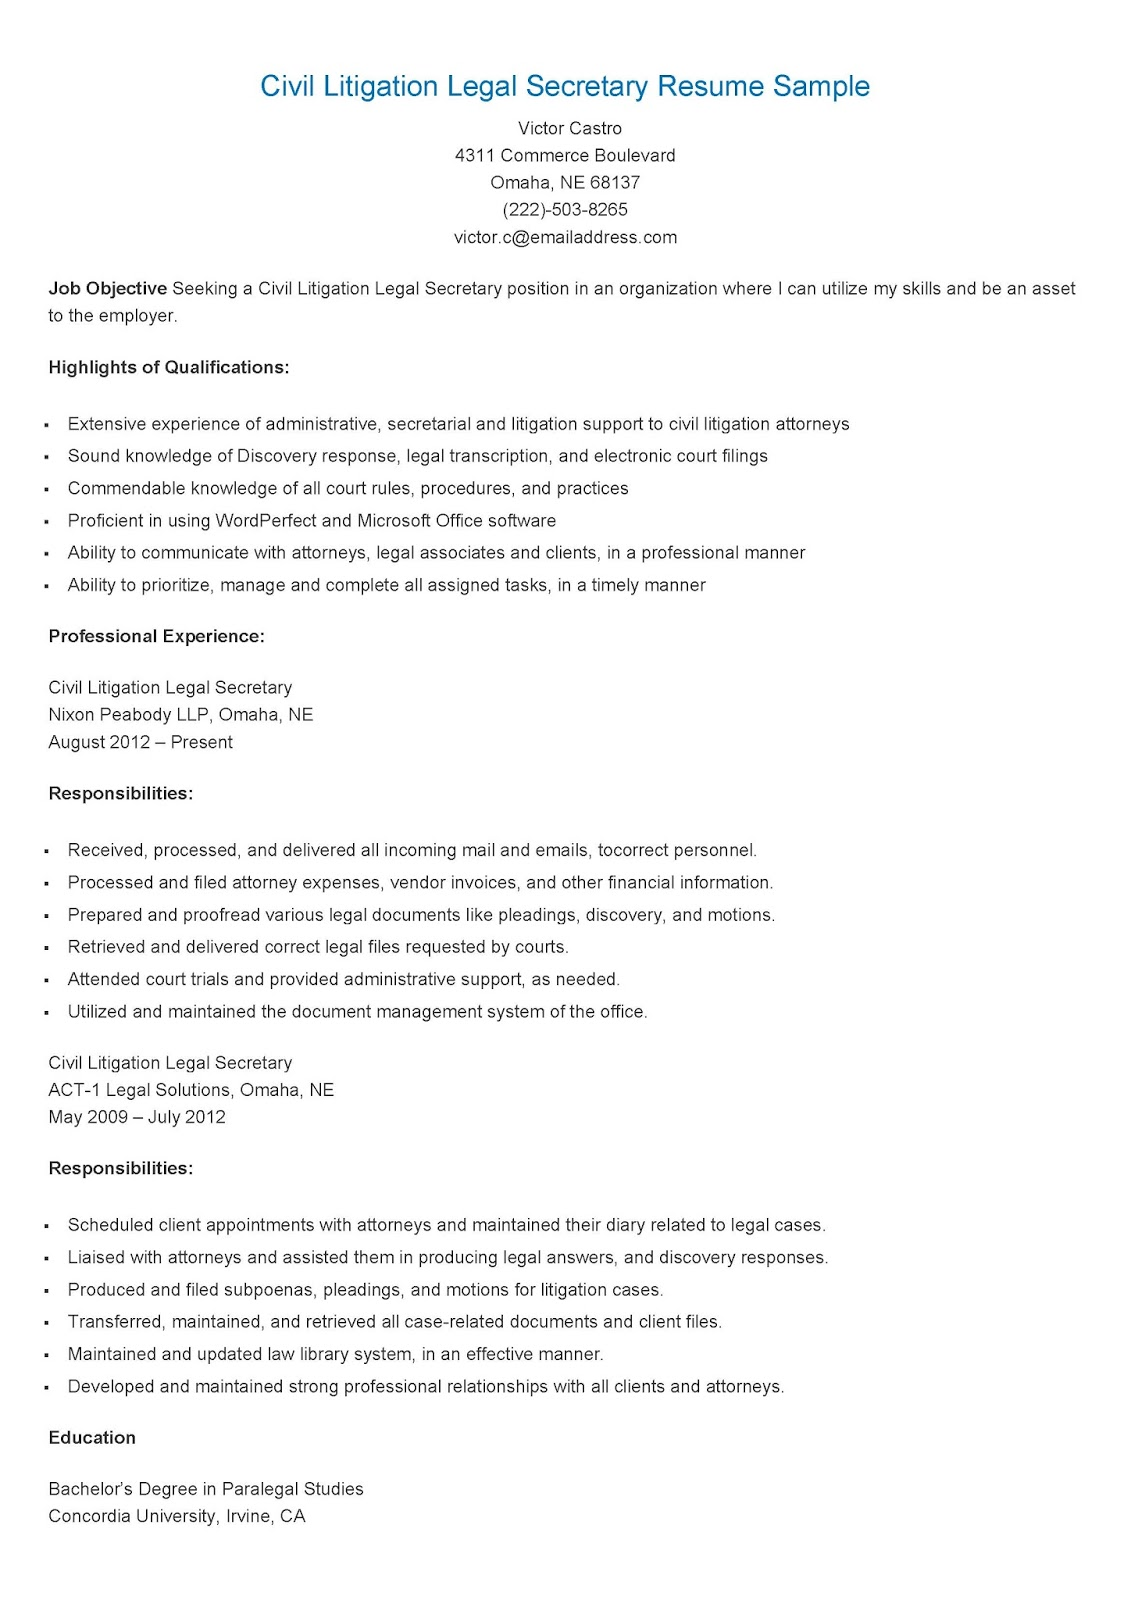 resume samples  civil litigation legal secretary resume sample